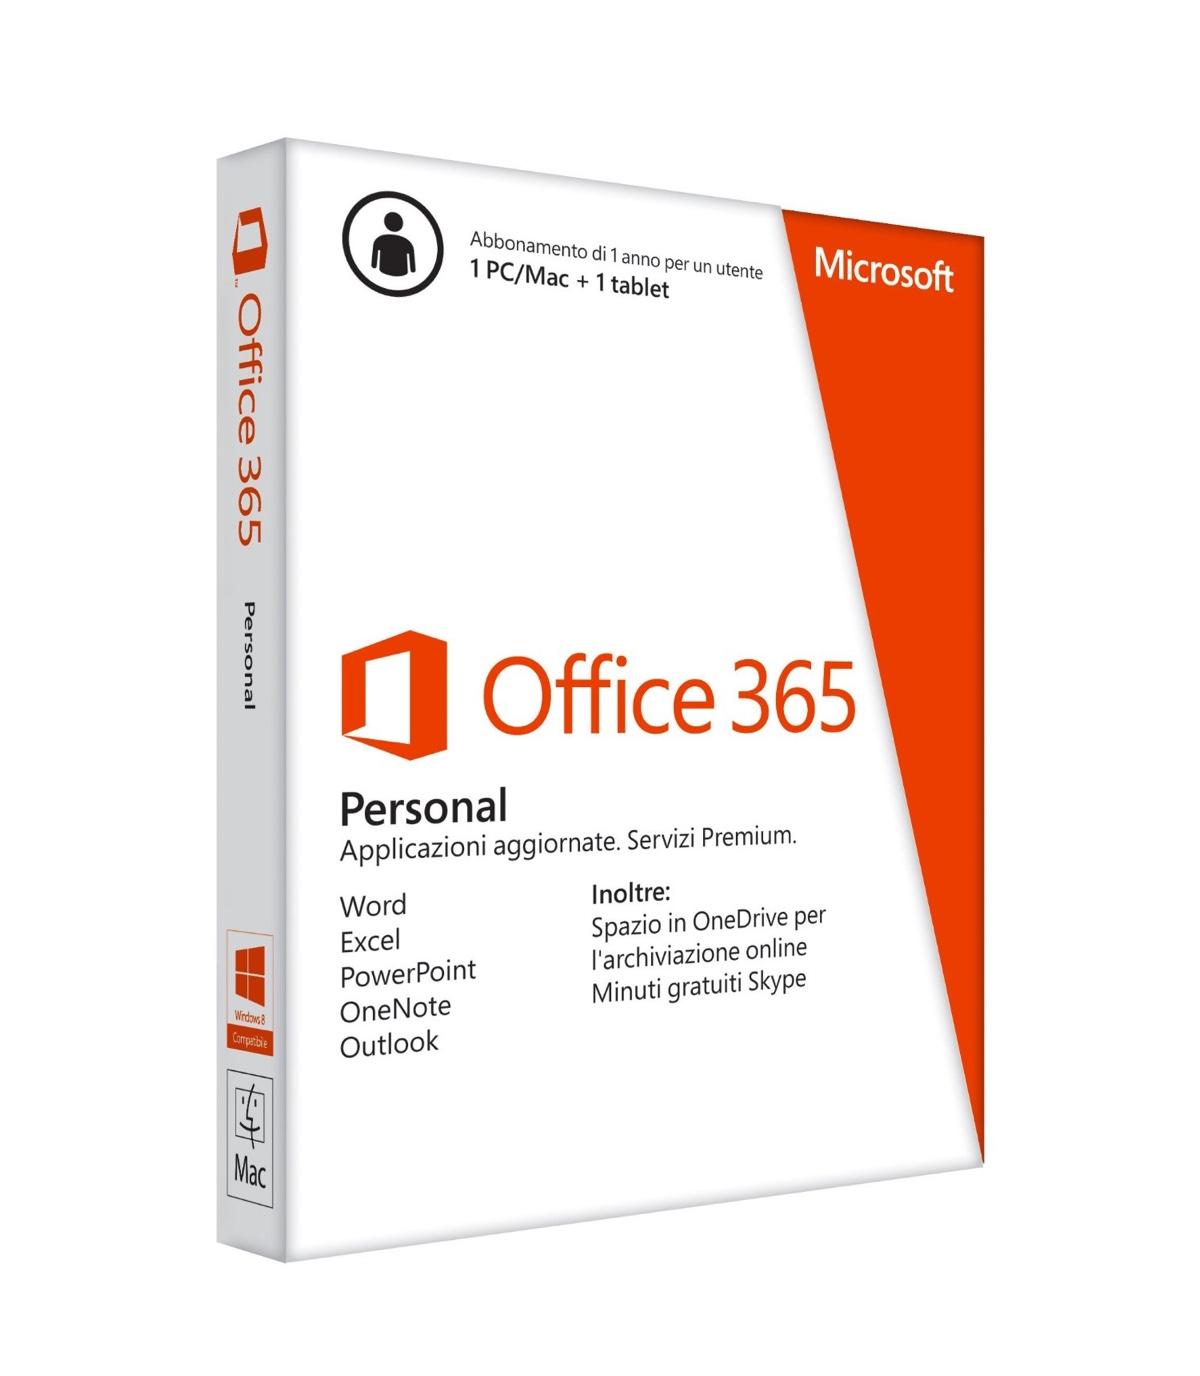 microsoft office 365 scatola ita box icon 1200